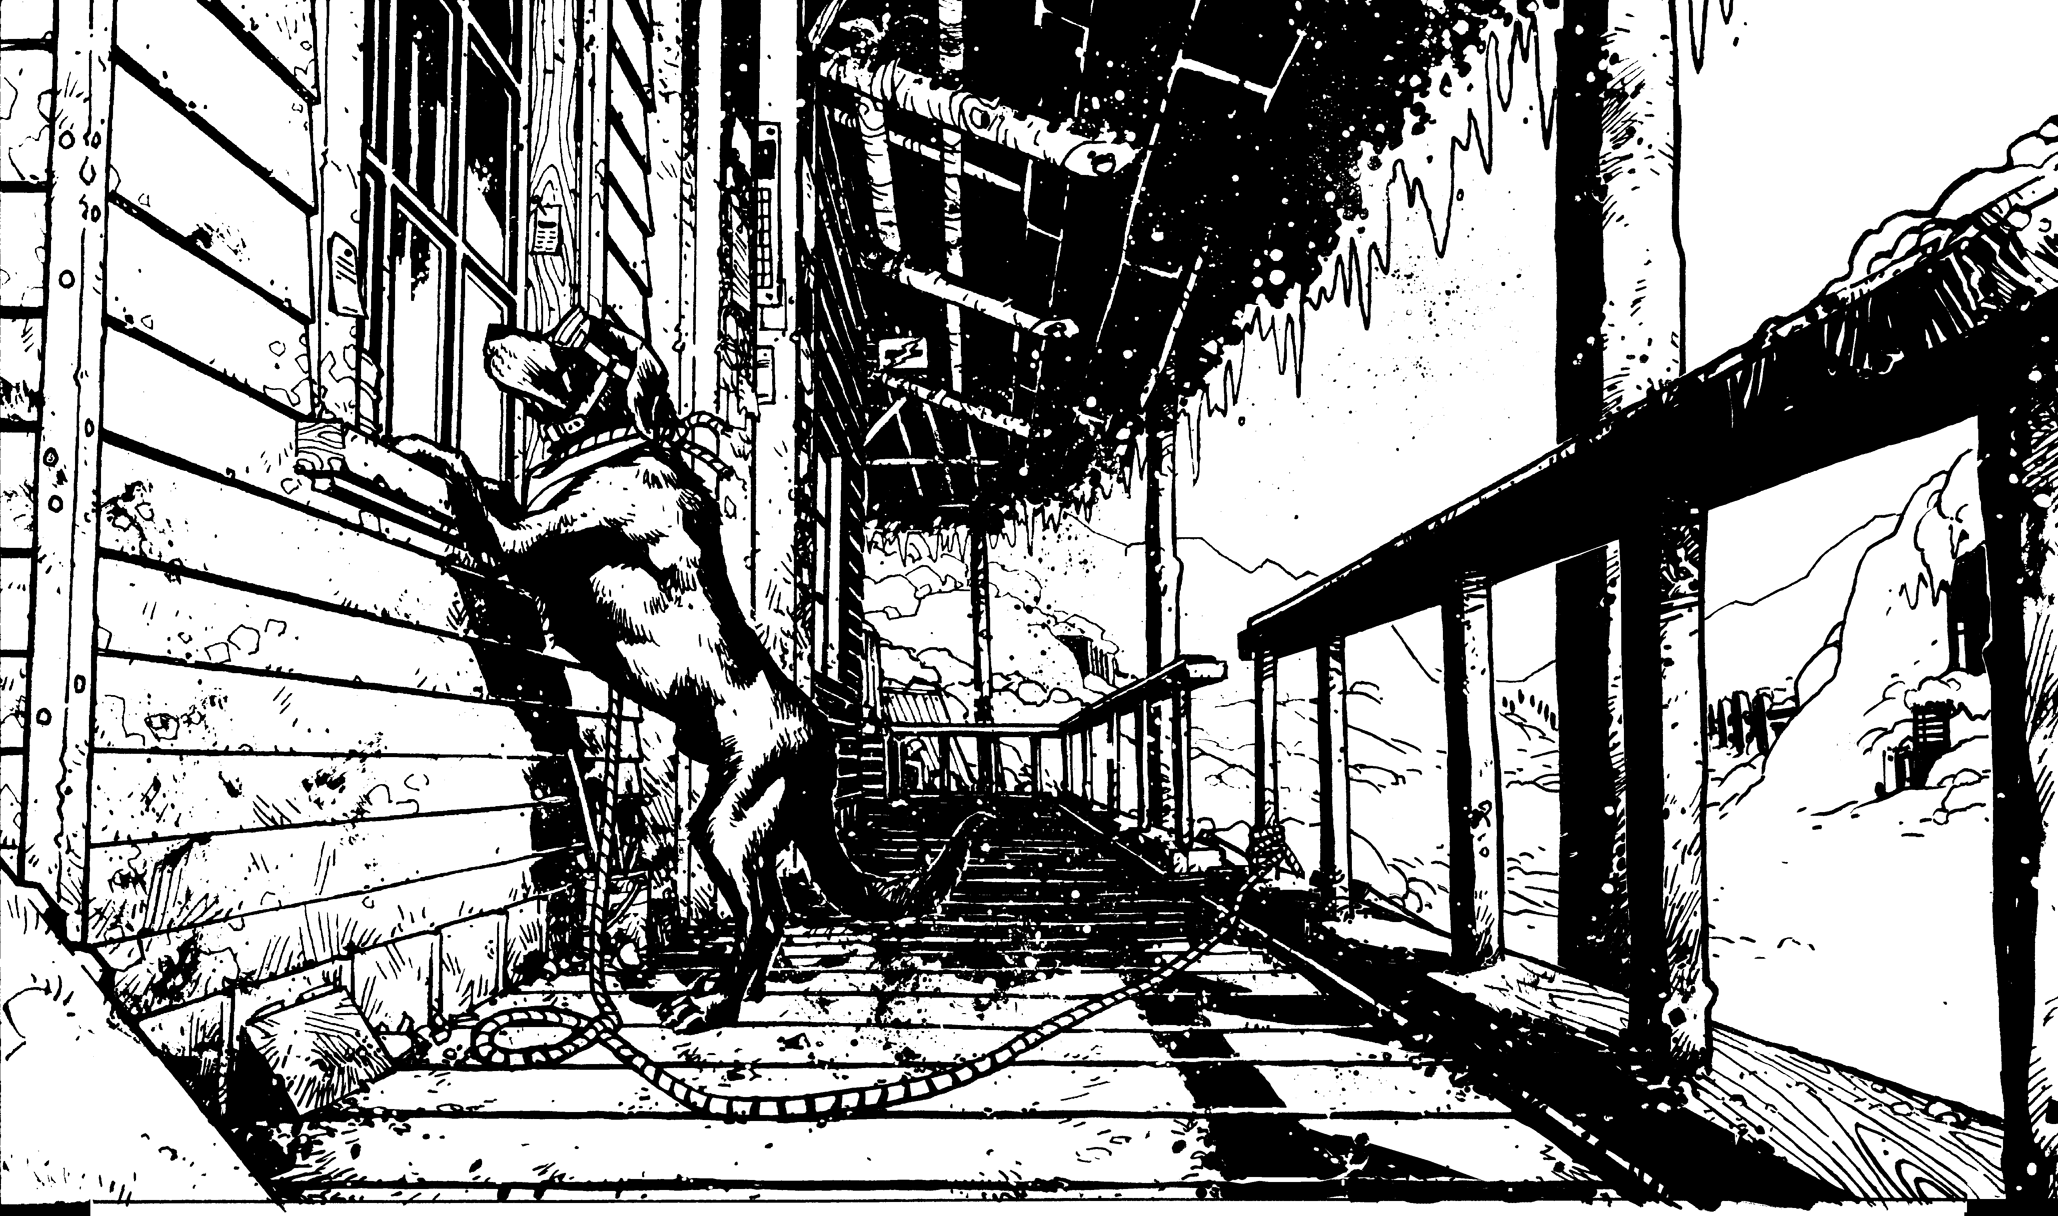 5_1 expanded panel lineart.png